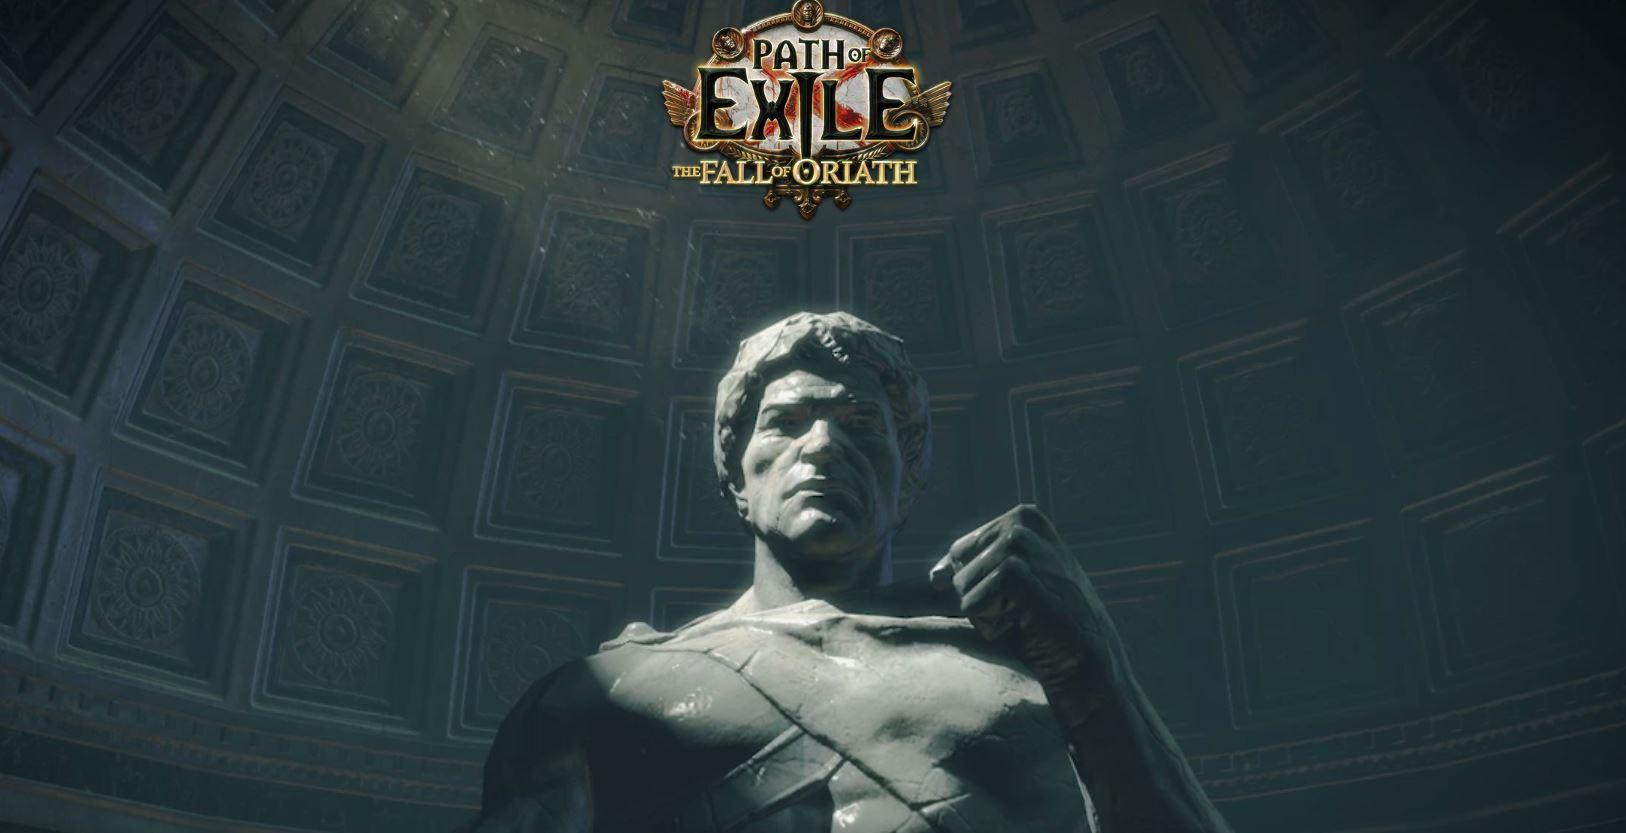 poe the fall of oriath release date